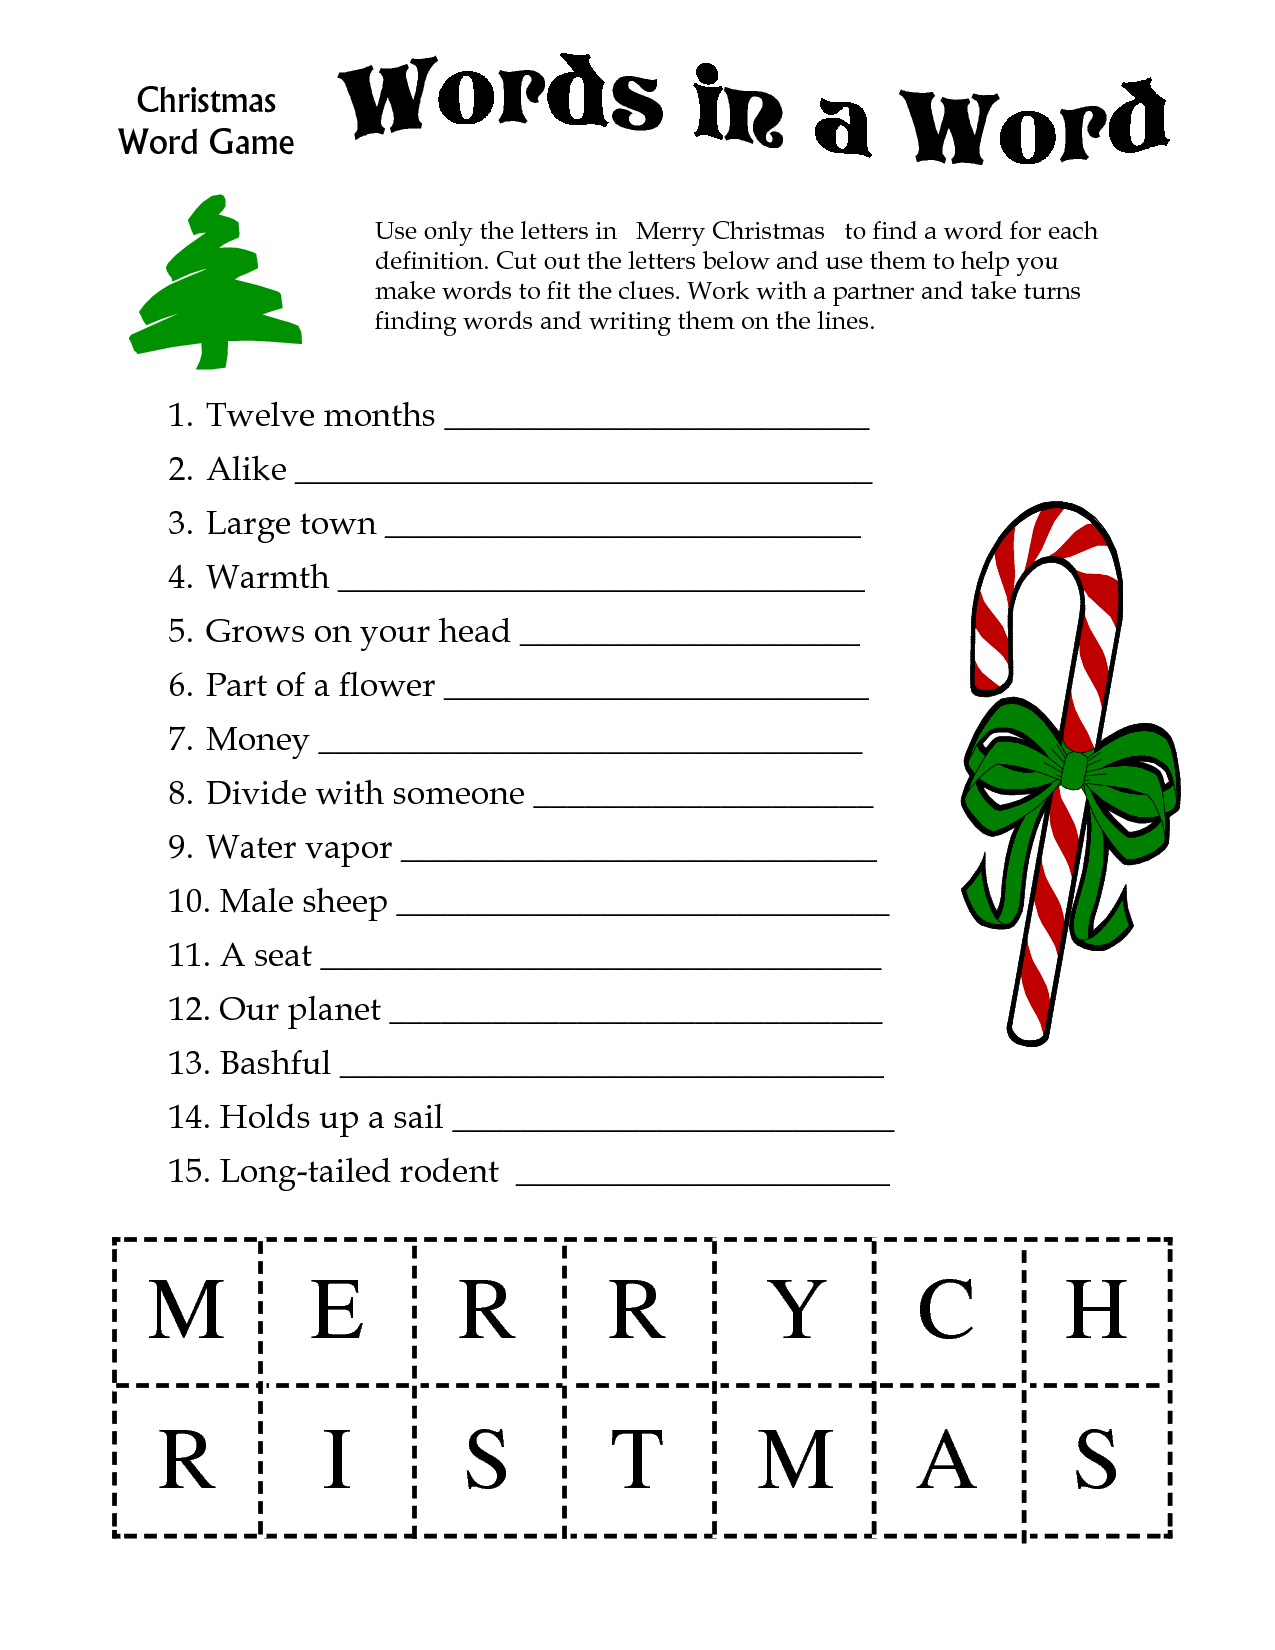 5 Images Of Free Printable Christmas Word Games | Printablee - Free Printable Christmas Games And Puzzles